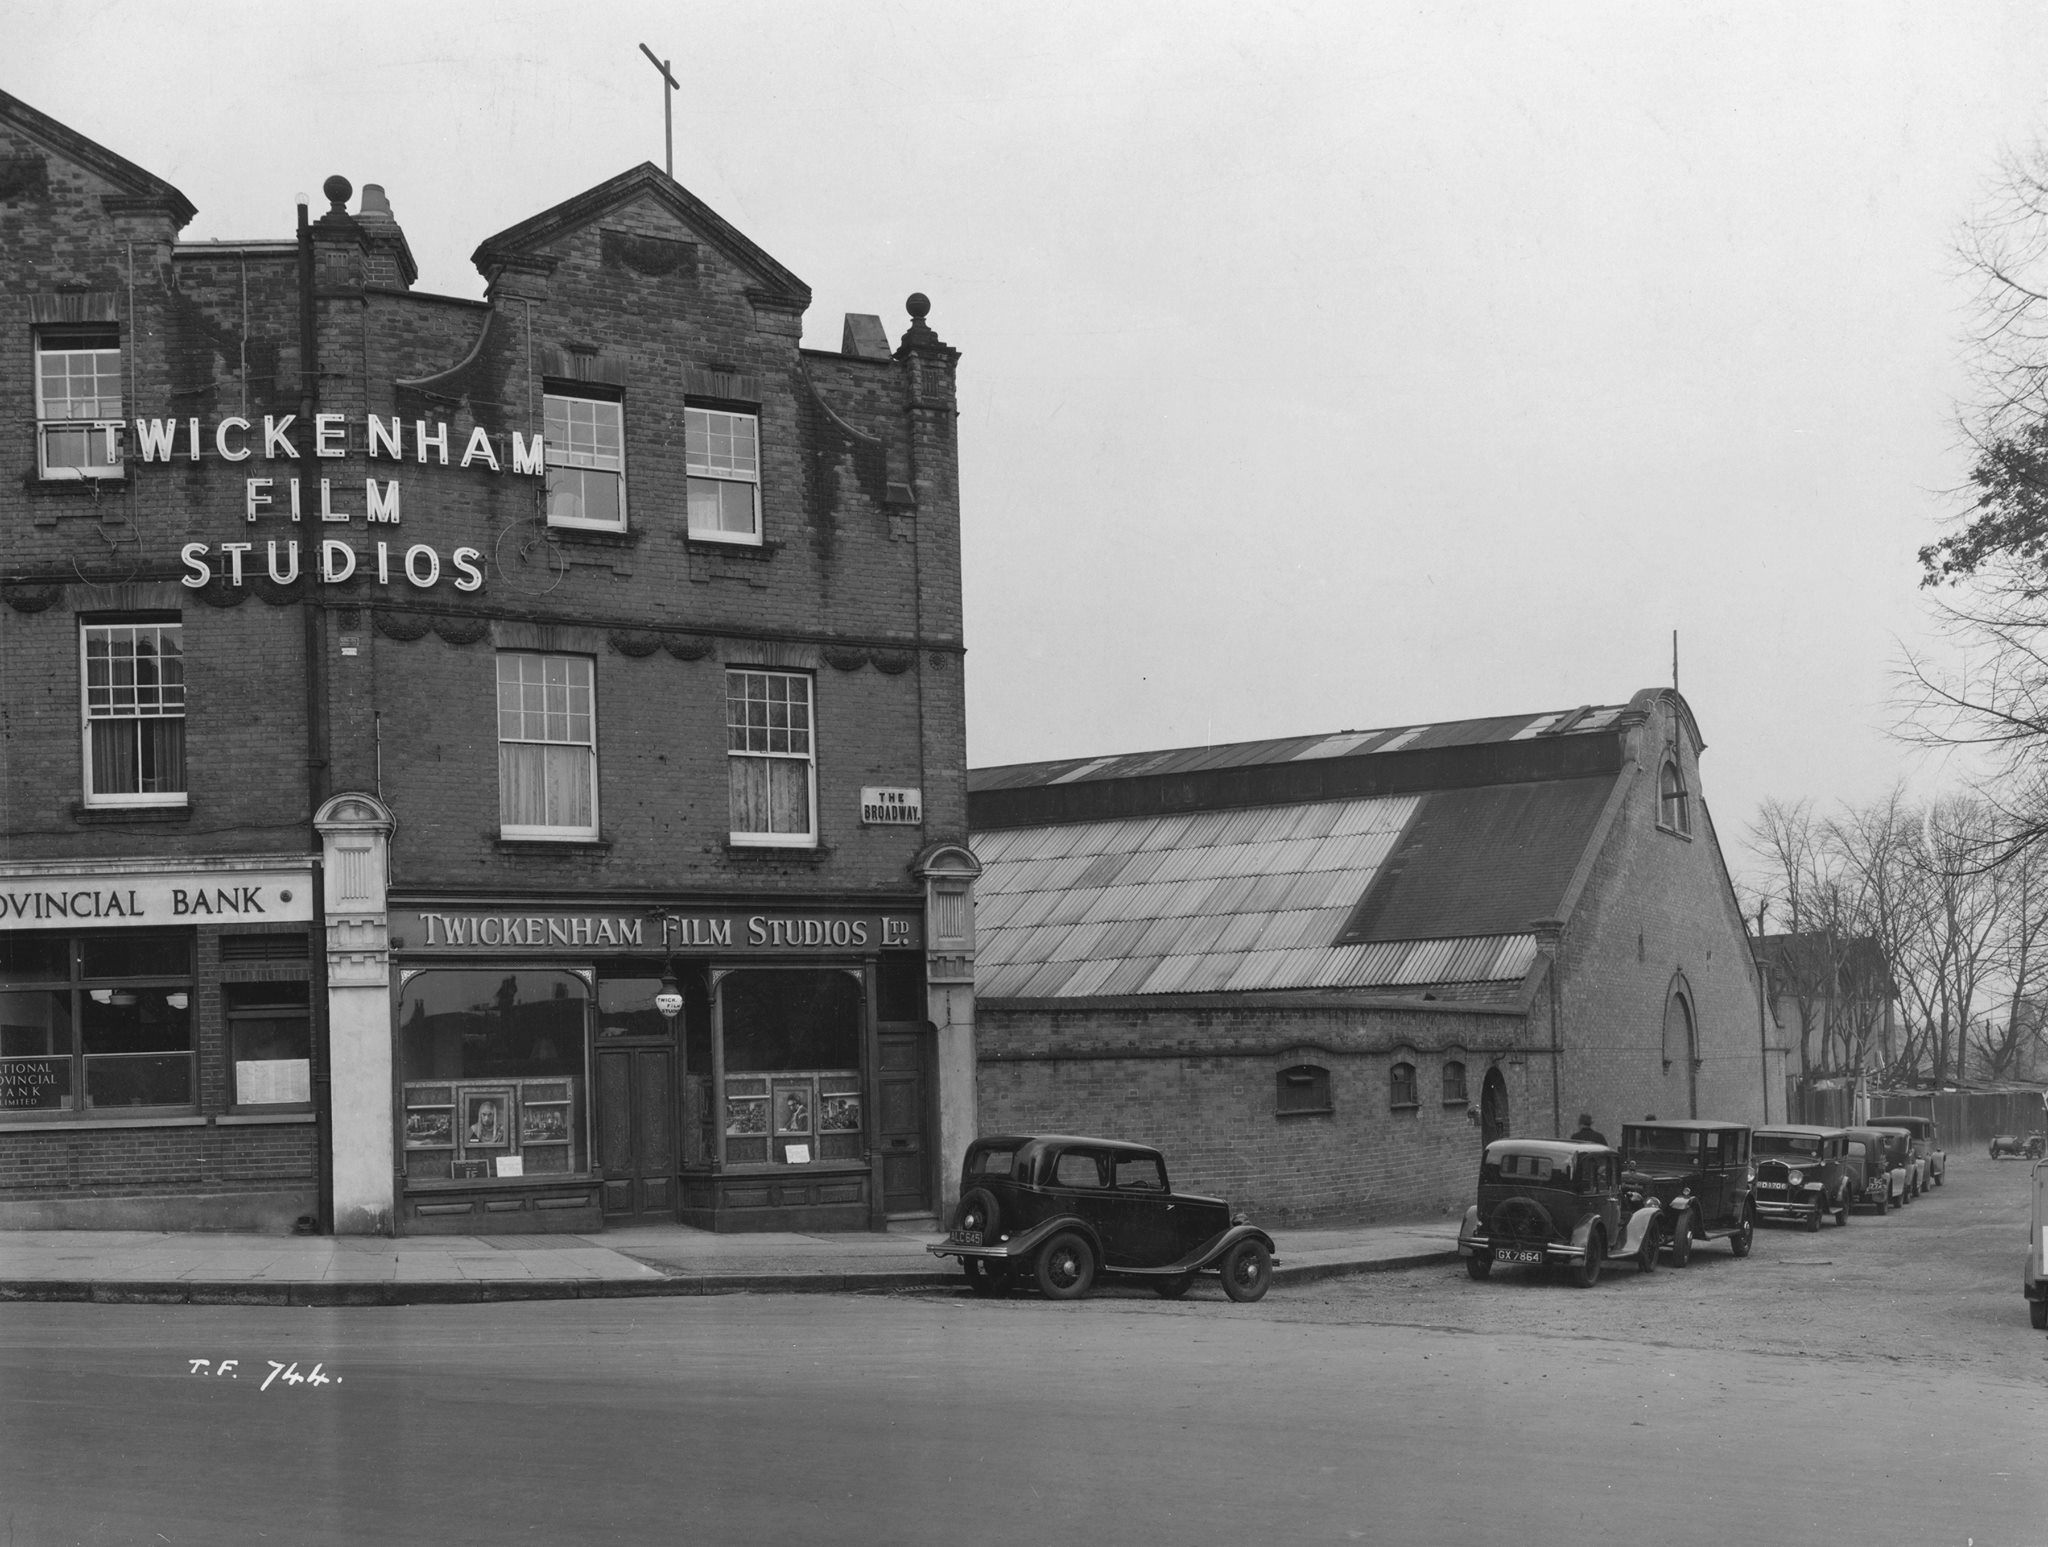 'ROLLING' - SAVING TWICKENHAM FILM STUDIOS